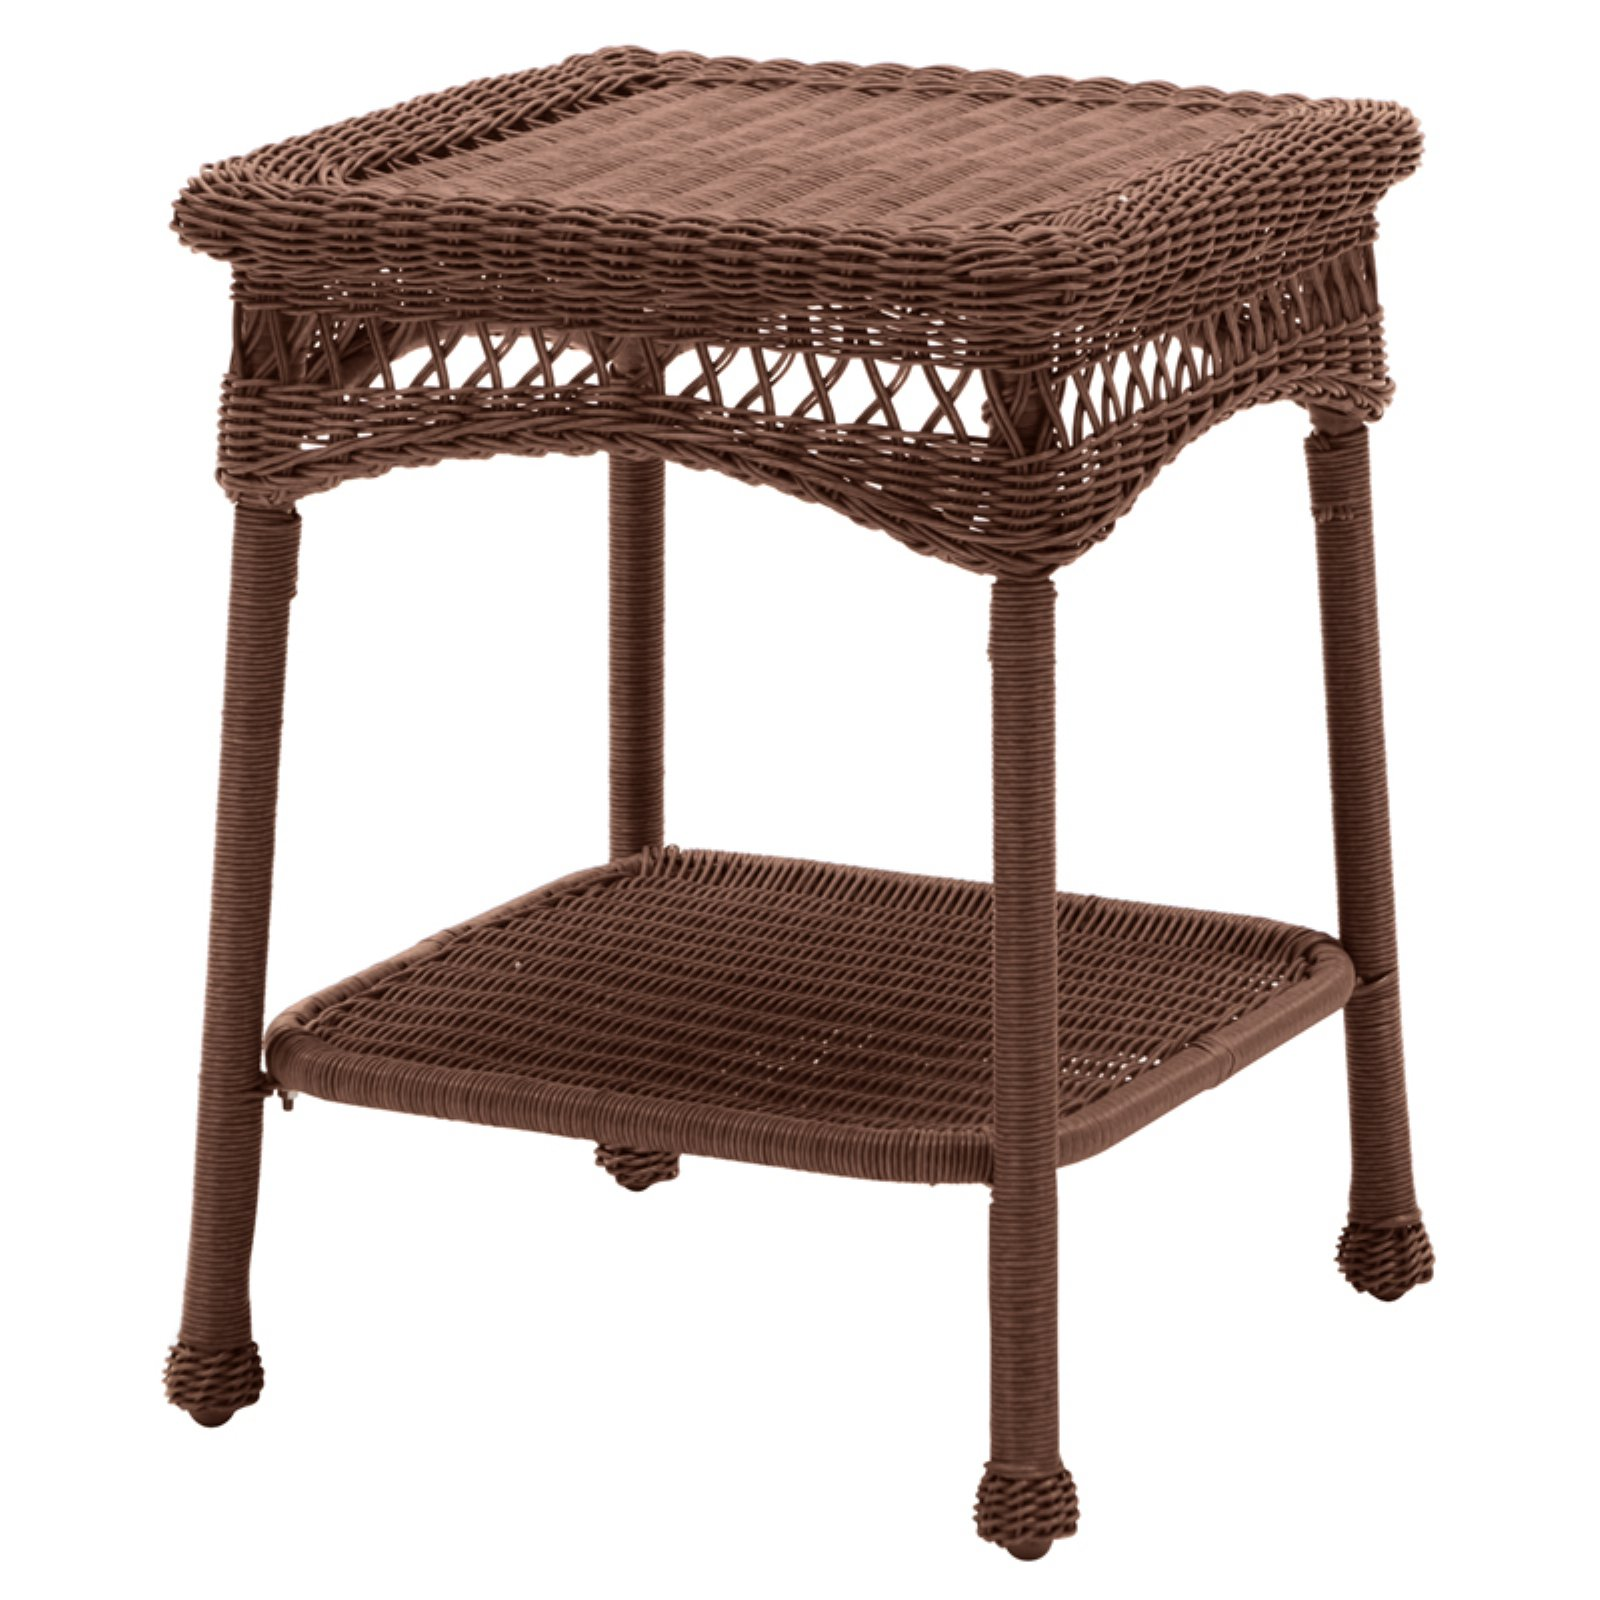 Coral Coast Casco Bay Resin Wicker Side Table by Chi Wing Rattan Factory